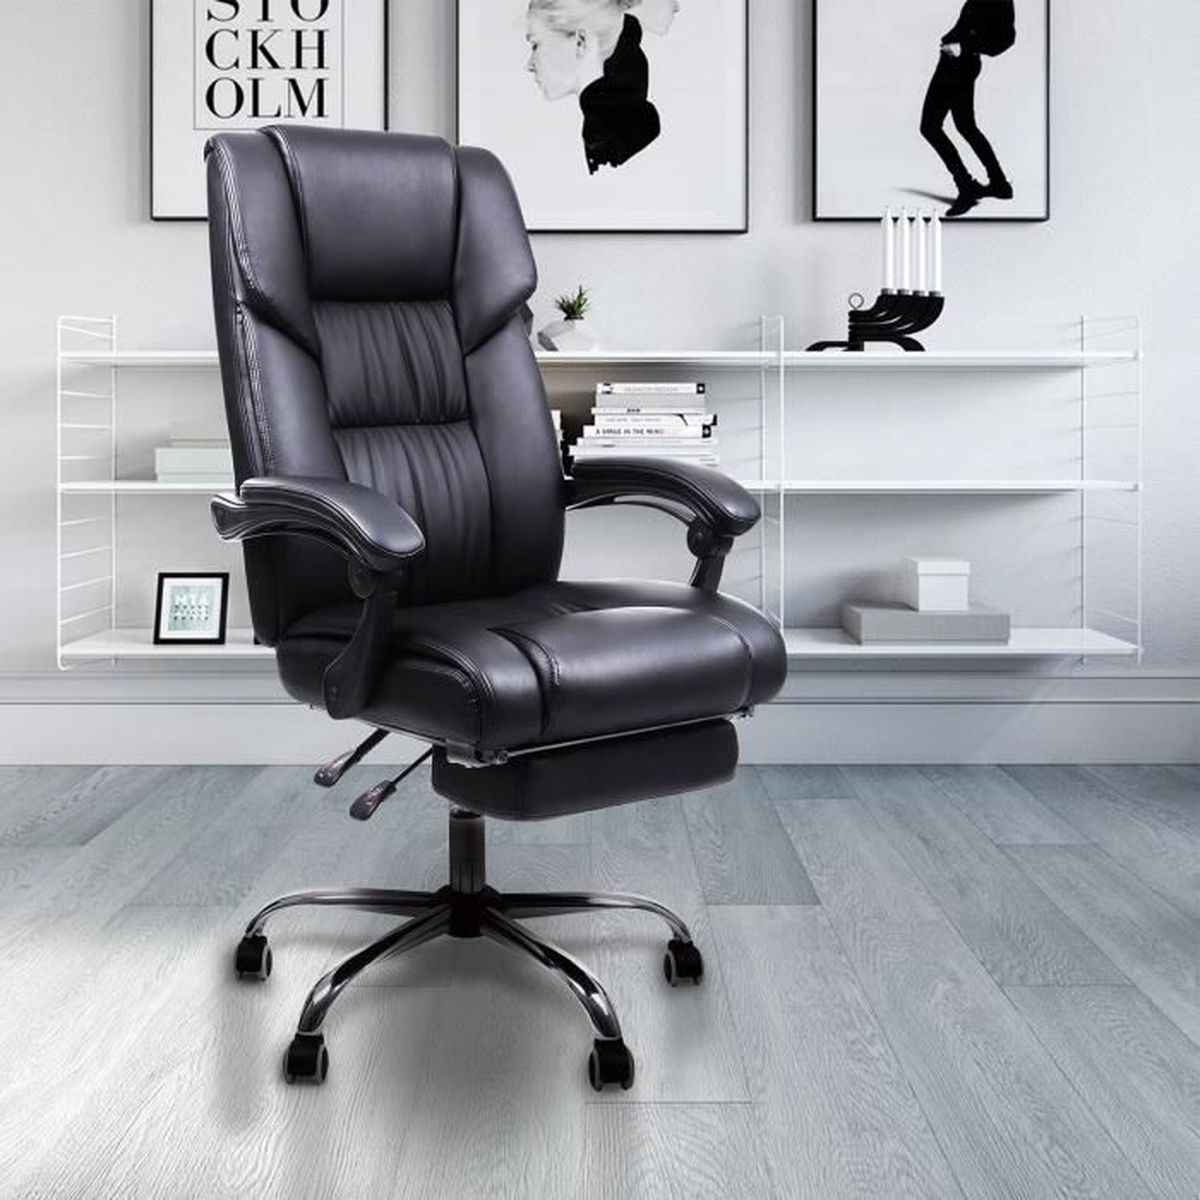 chaise pour bureau stock of chaise de bureau ergonomique ikea chaise with chaise pour bureau. Black Bedroom Furniture Sets. Home Design Ideas